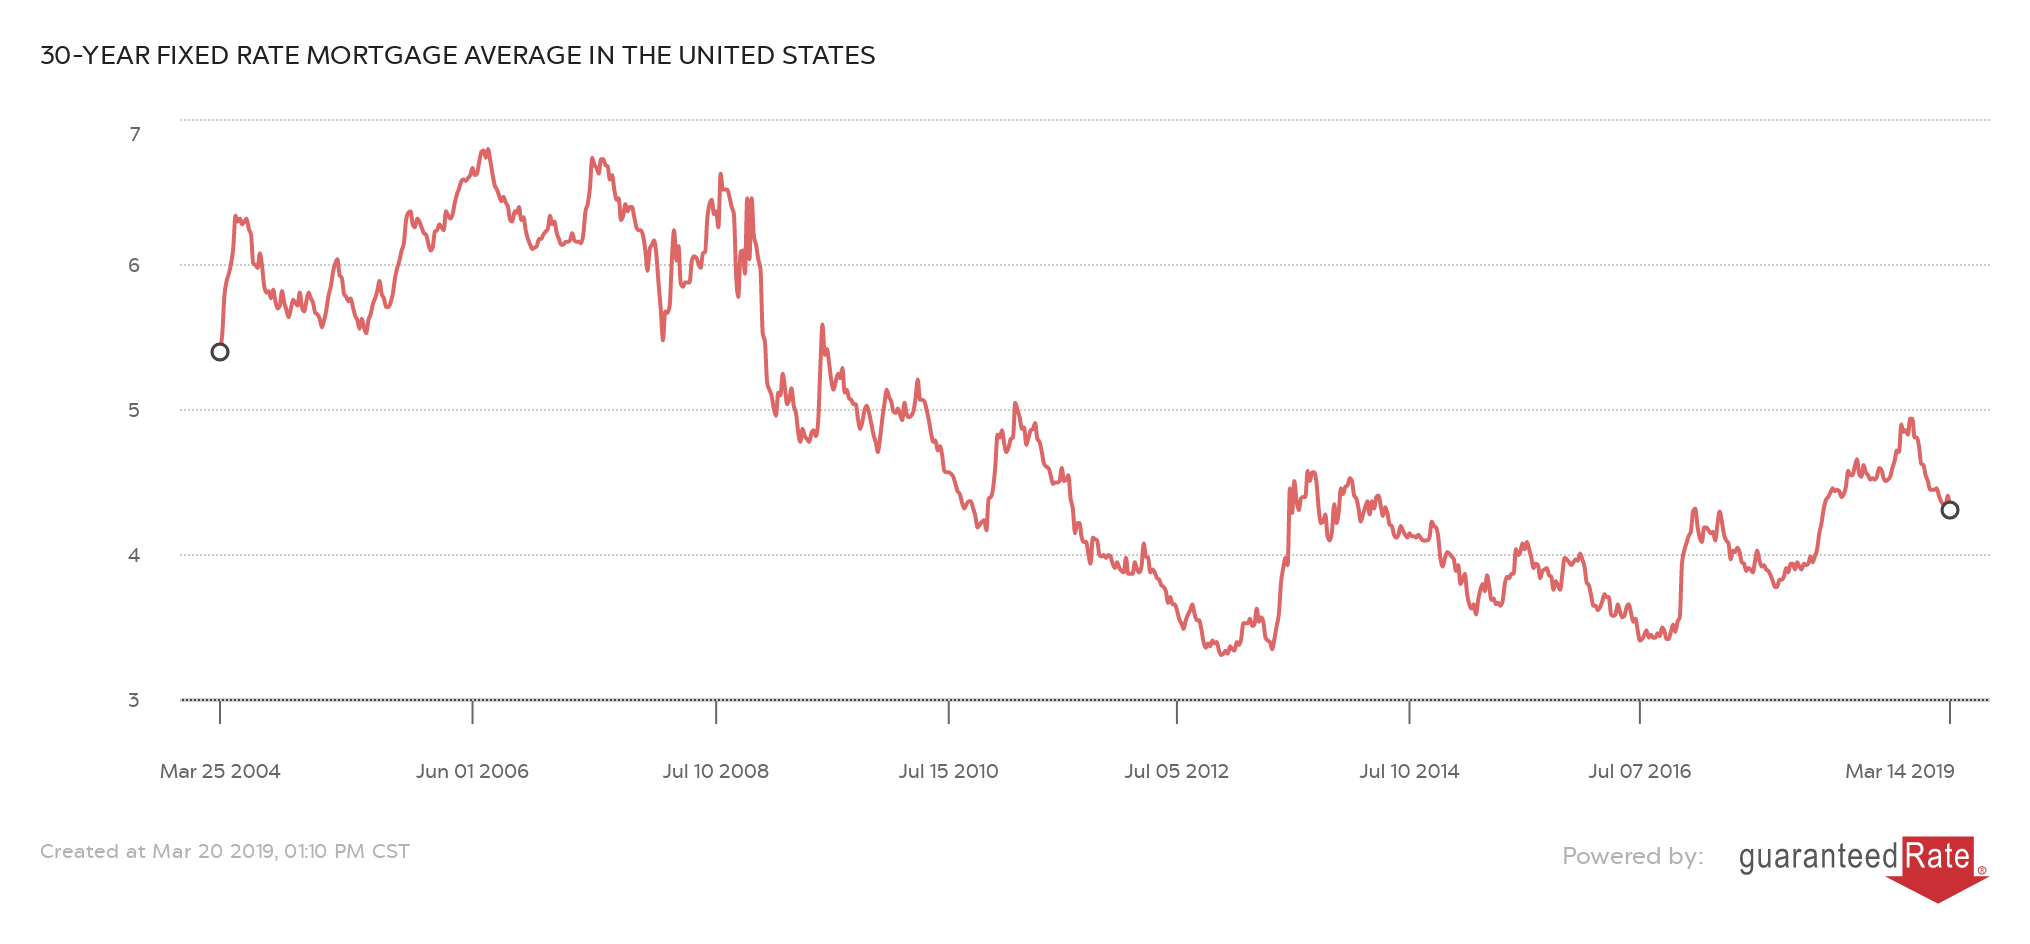 30-YEAR FIXED RATE MORTGAGE AVERAGE IN THE UNITED STATES - National Chart